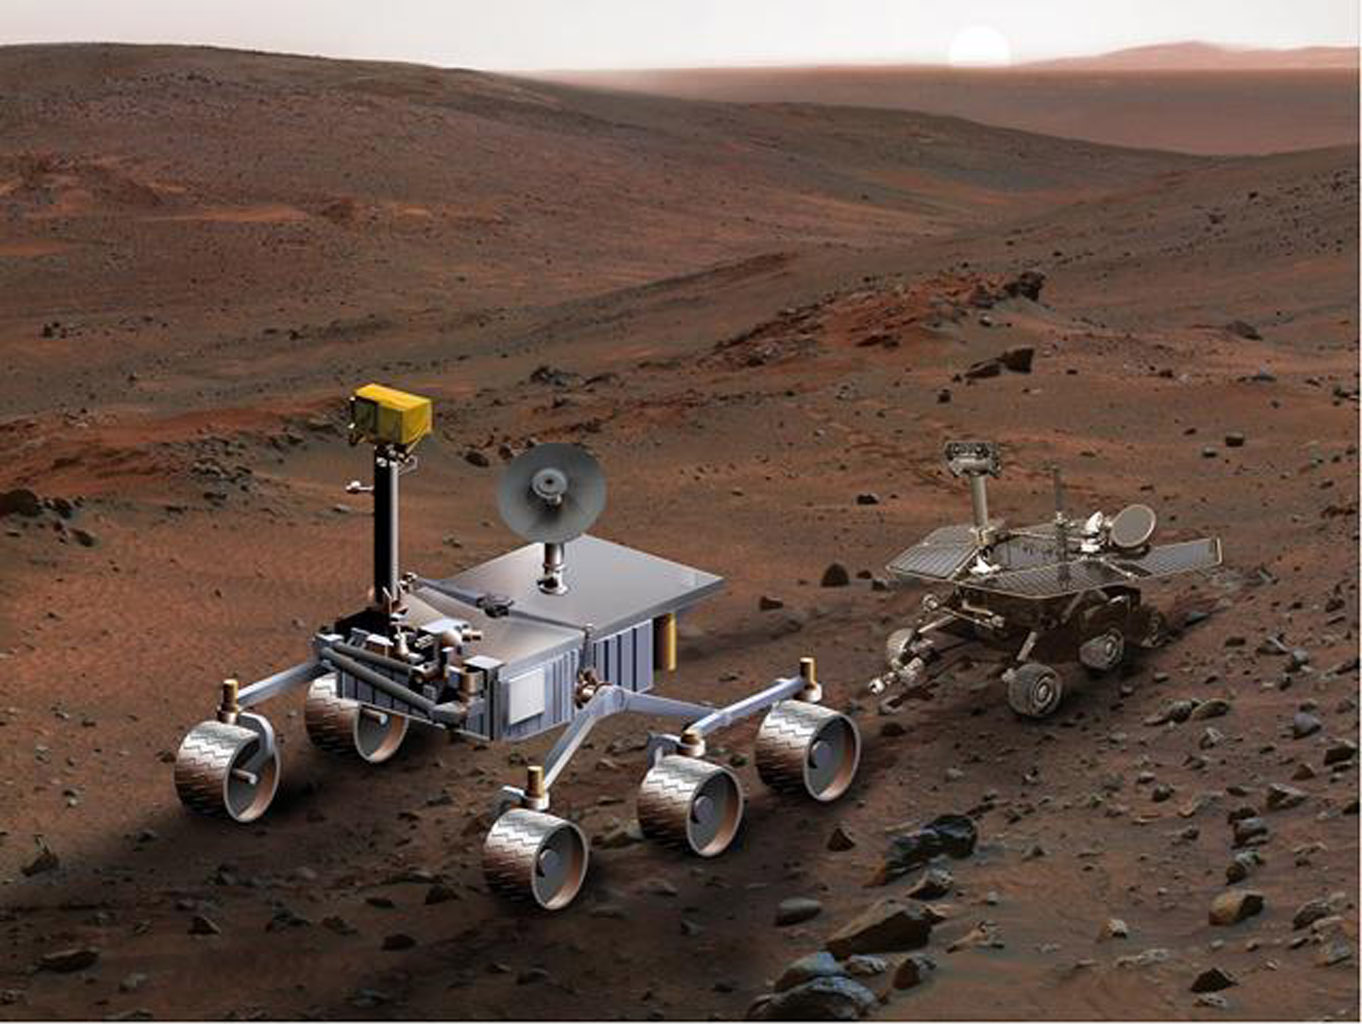 mars rover expeditions - photo #22